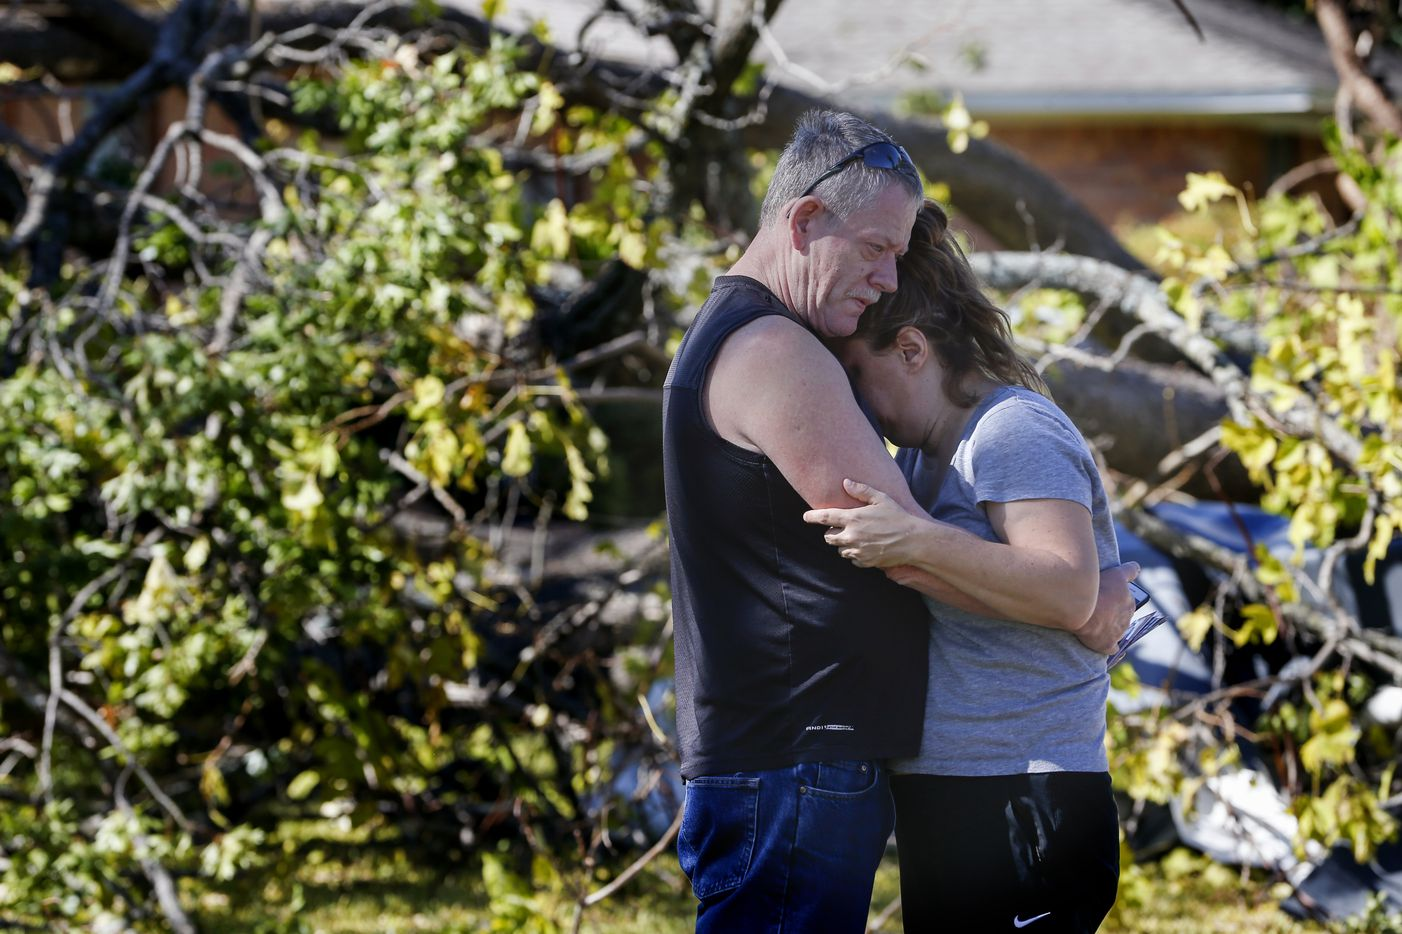 Tommy Edmonds, left, embraces his wife, Heidi Edmonds outside of their home, which was destroyed when a tornado hit the night before, on Westway Avenue in Garland, Texas, on Sunday, Oct. 21, 2019.